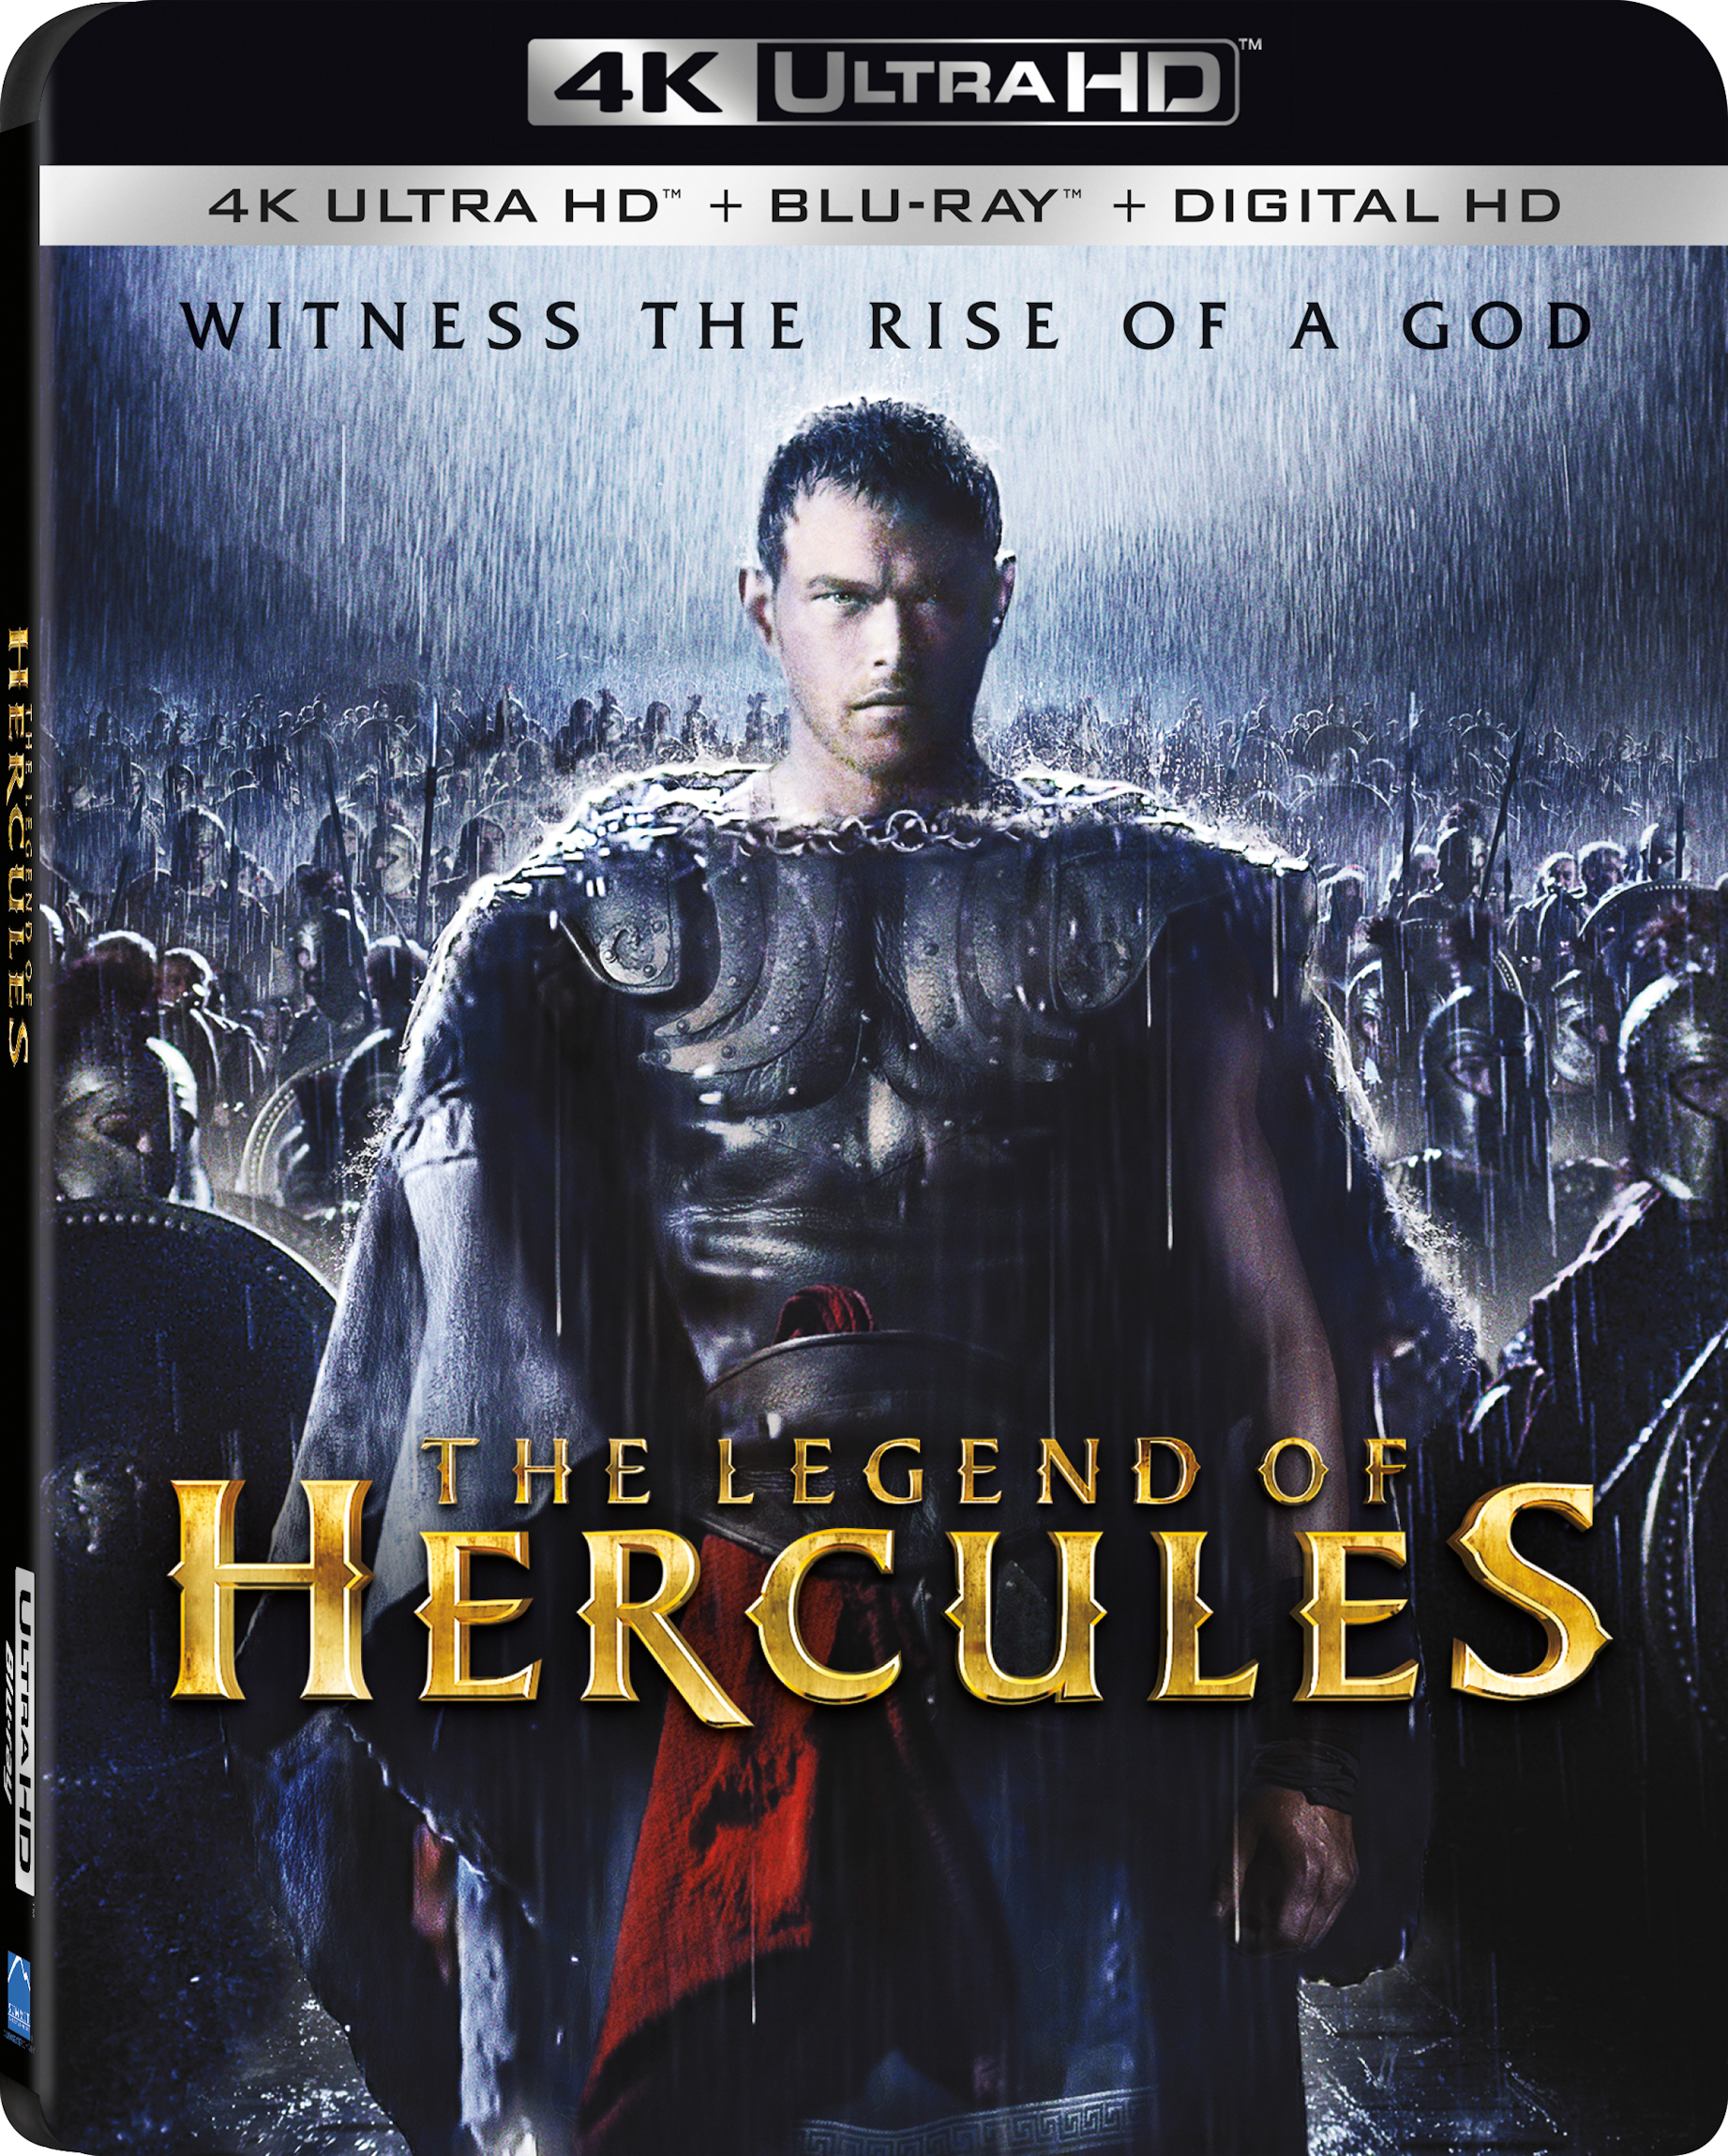 The Legend of Hercules 4K (2014) 4K Ultra HD Blu-ray